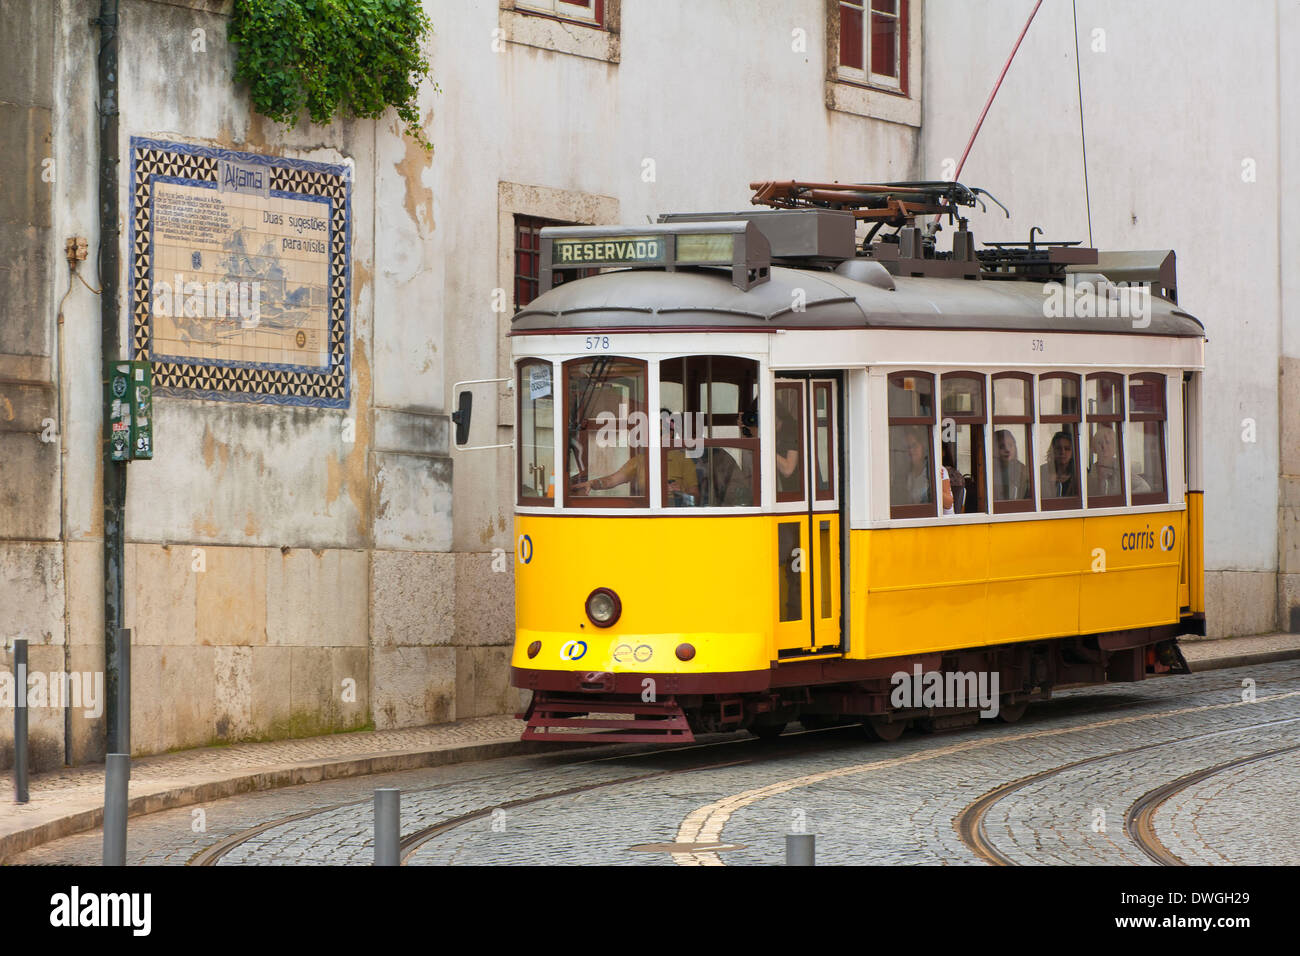 Tram, Alfama District - Stock Image